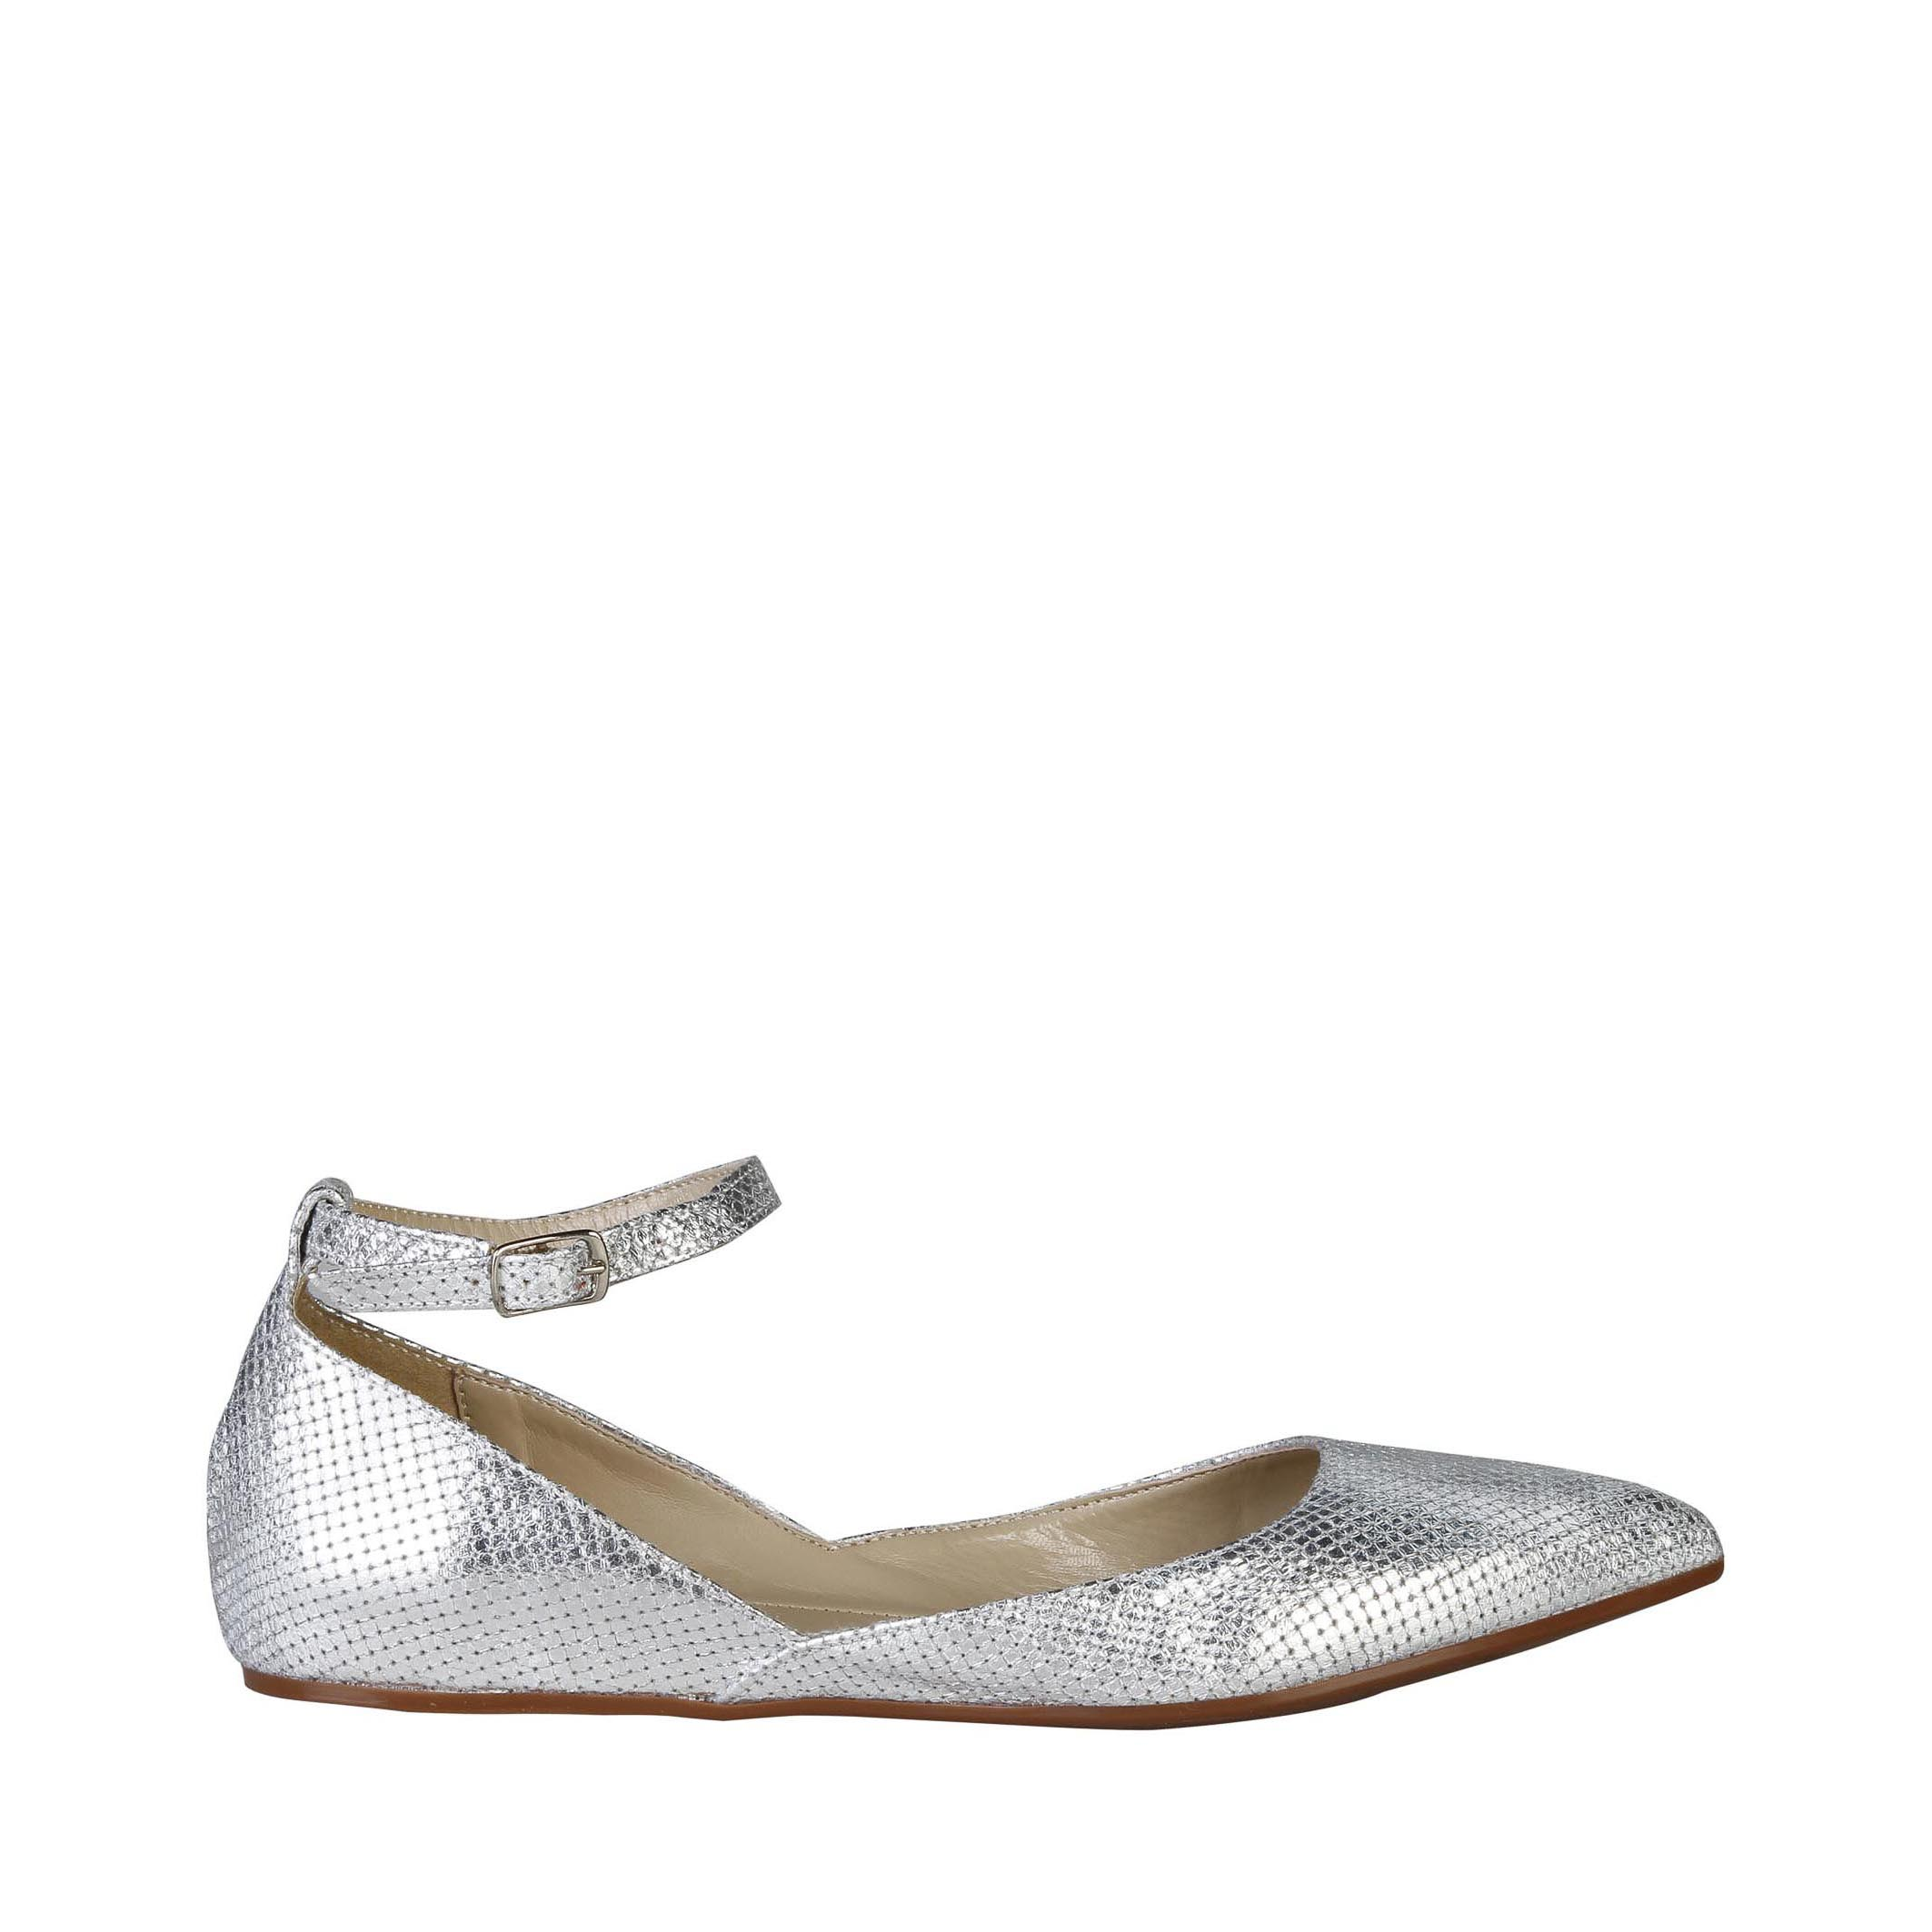 662faab26 Ballet flats Archives - Brands Store - Fashion Store